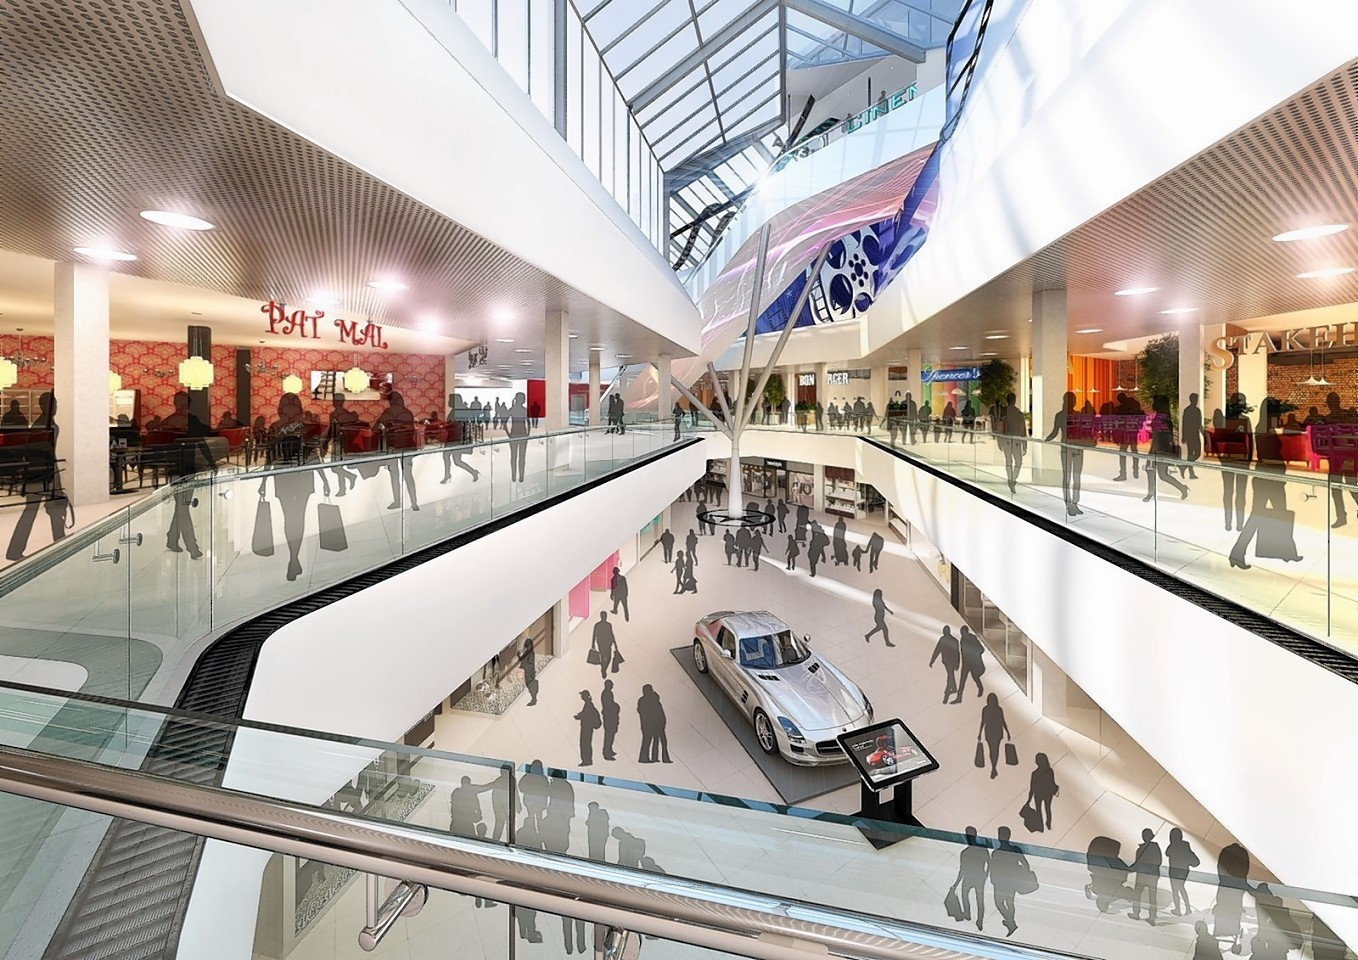 Artist impressions of the expansion plans